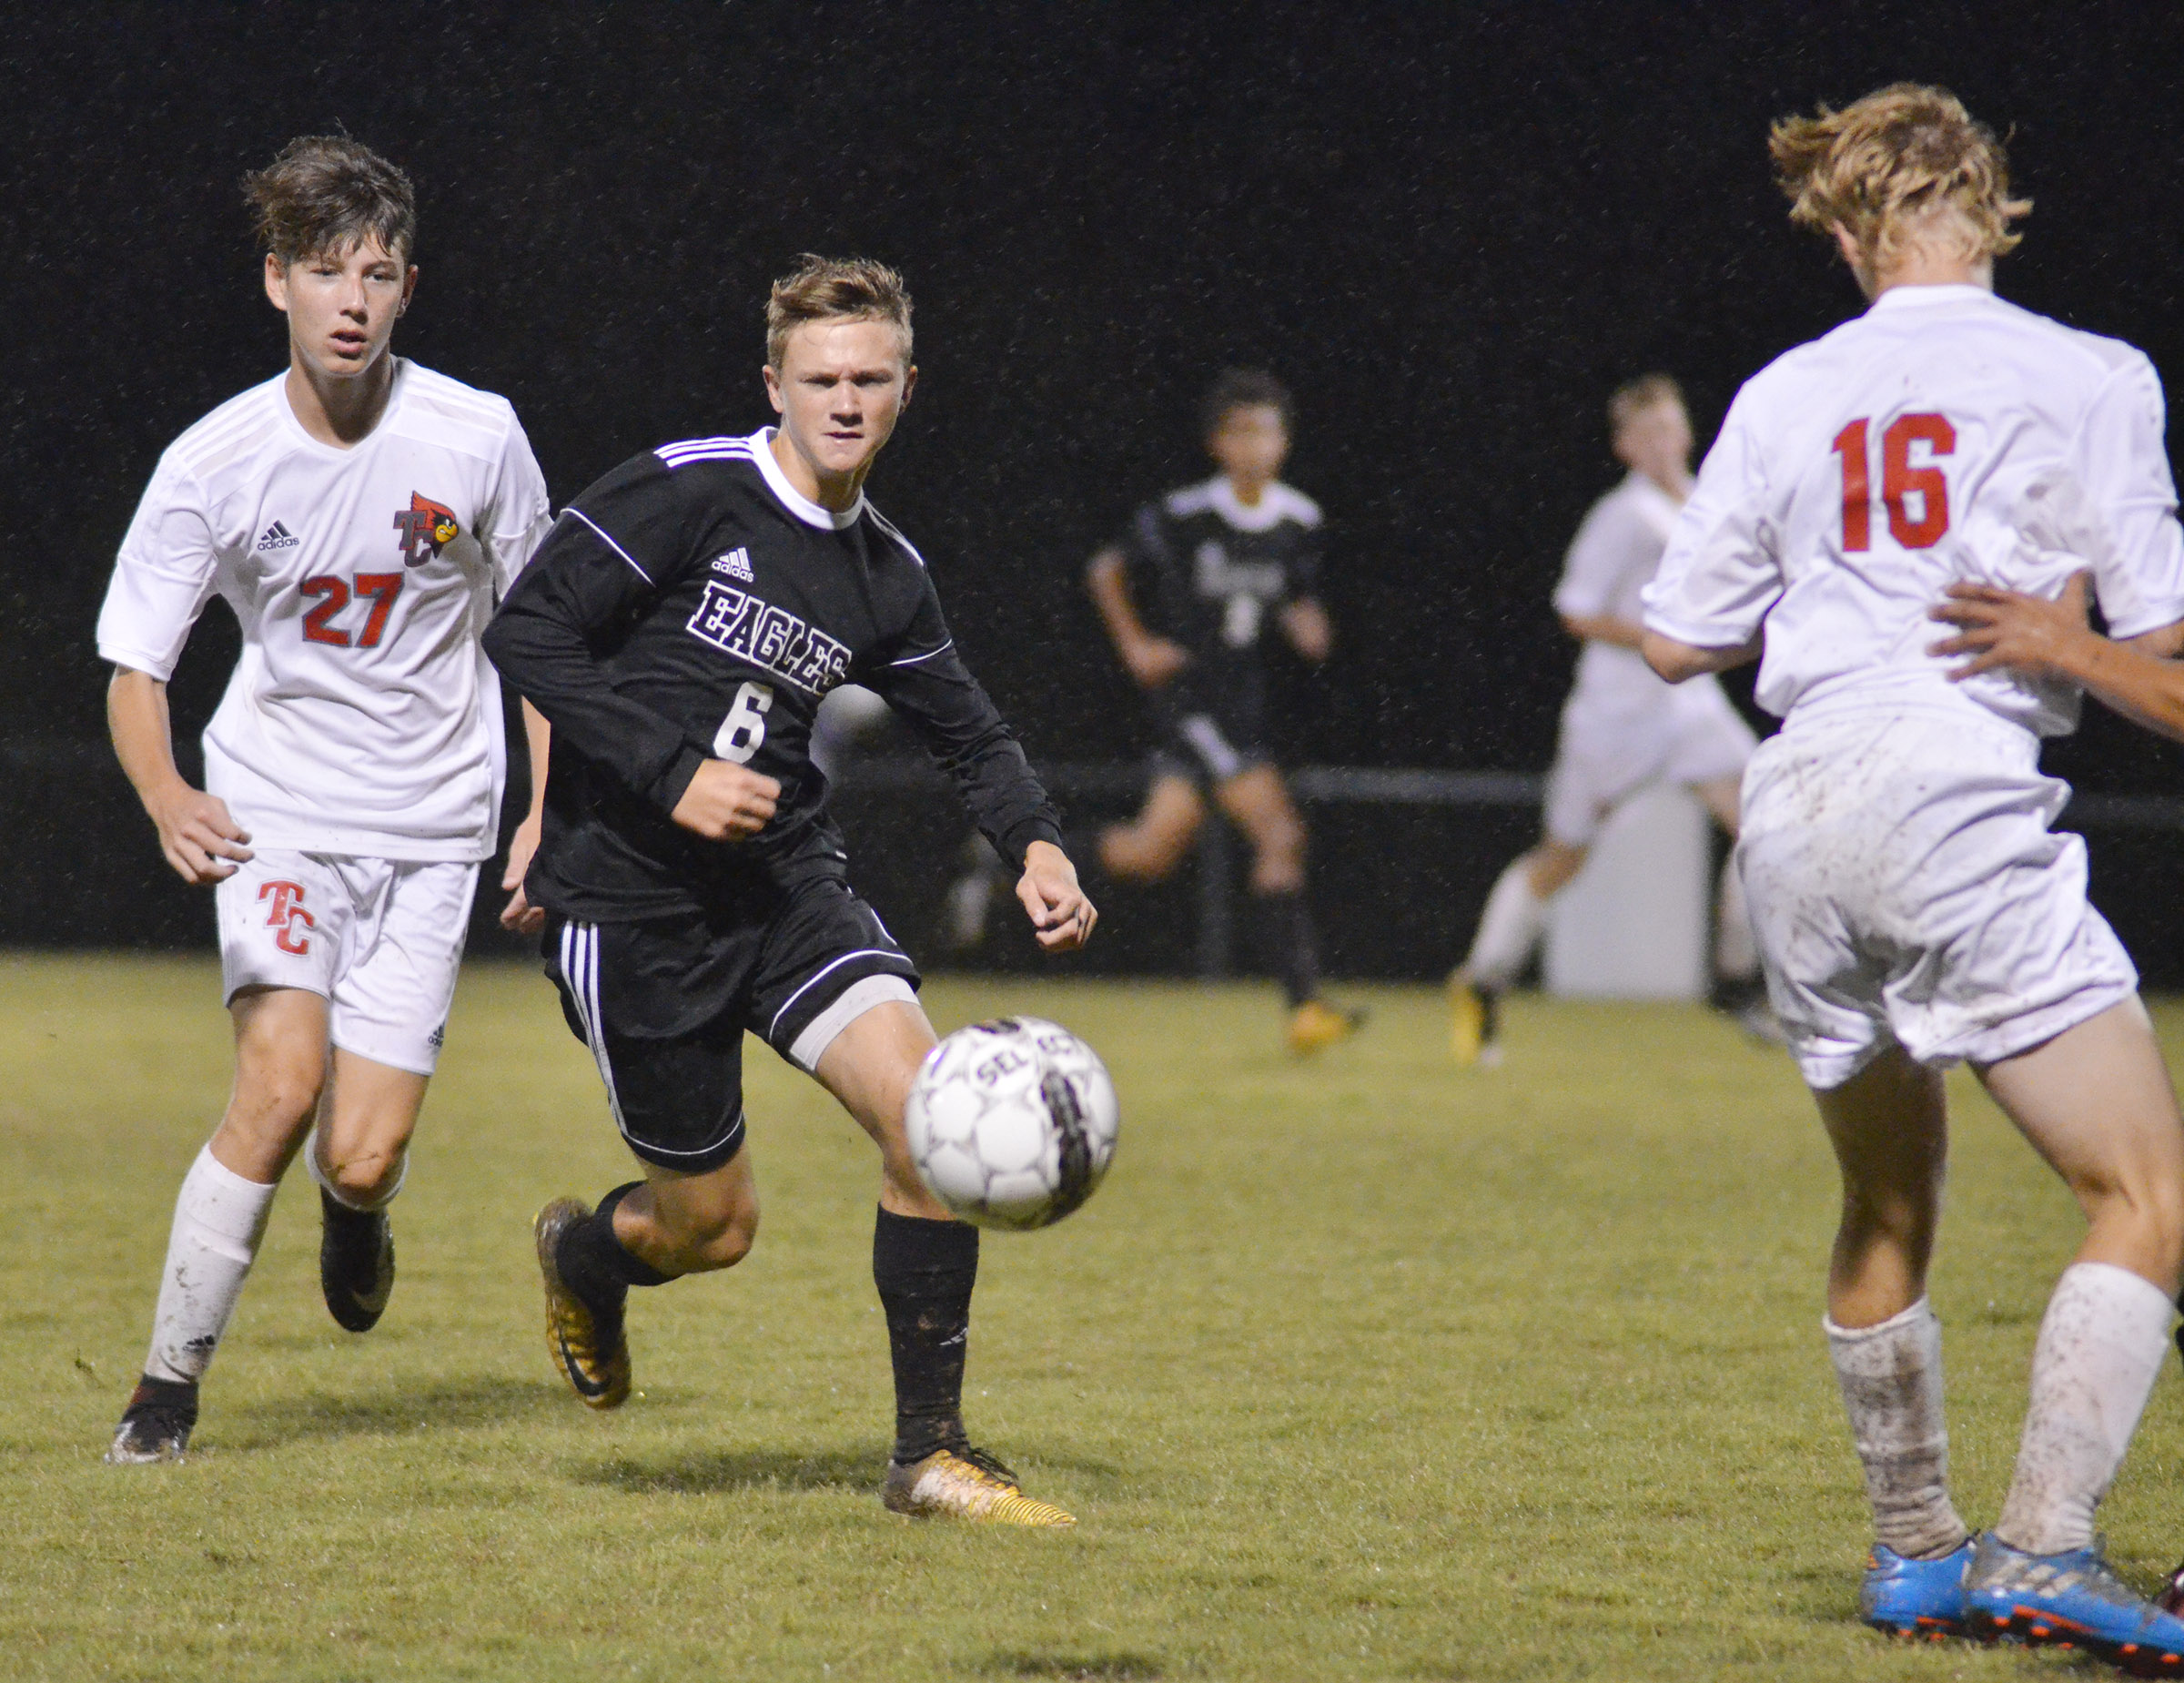 CHS freshman Blase Wheatley runs for the ball.